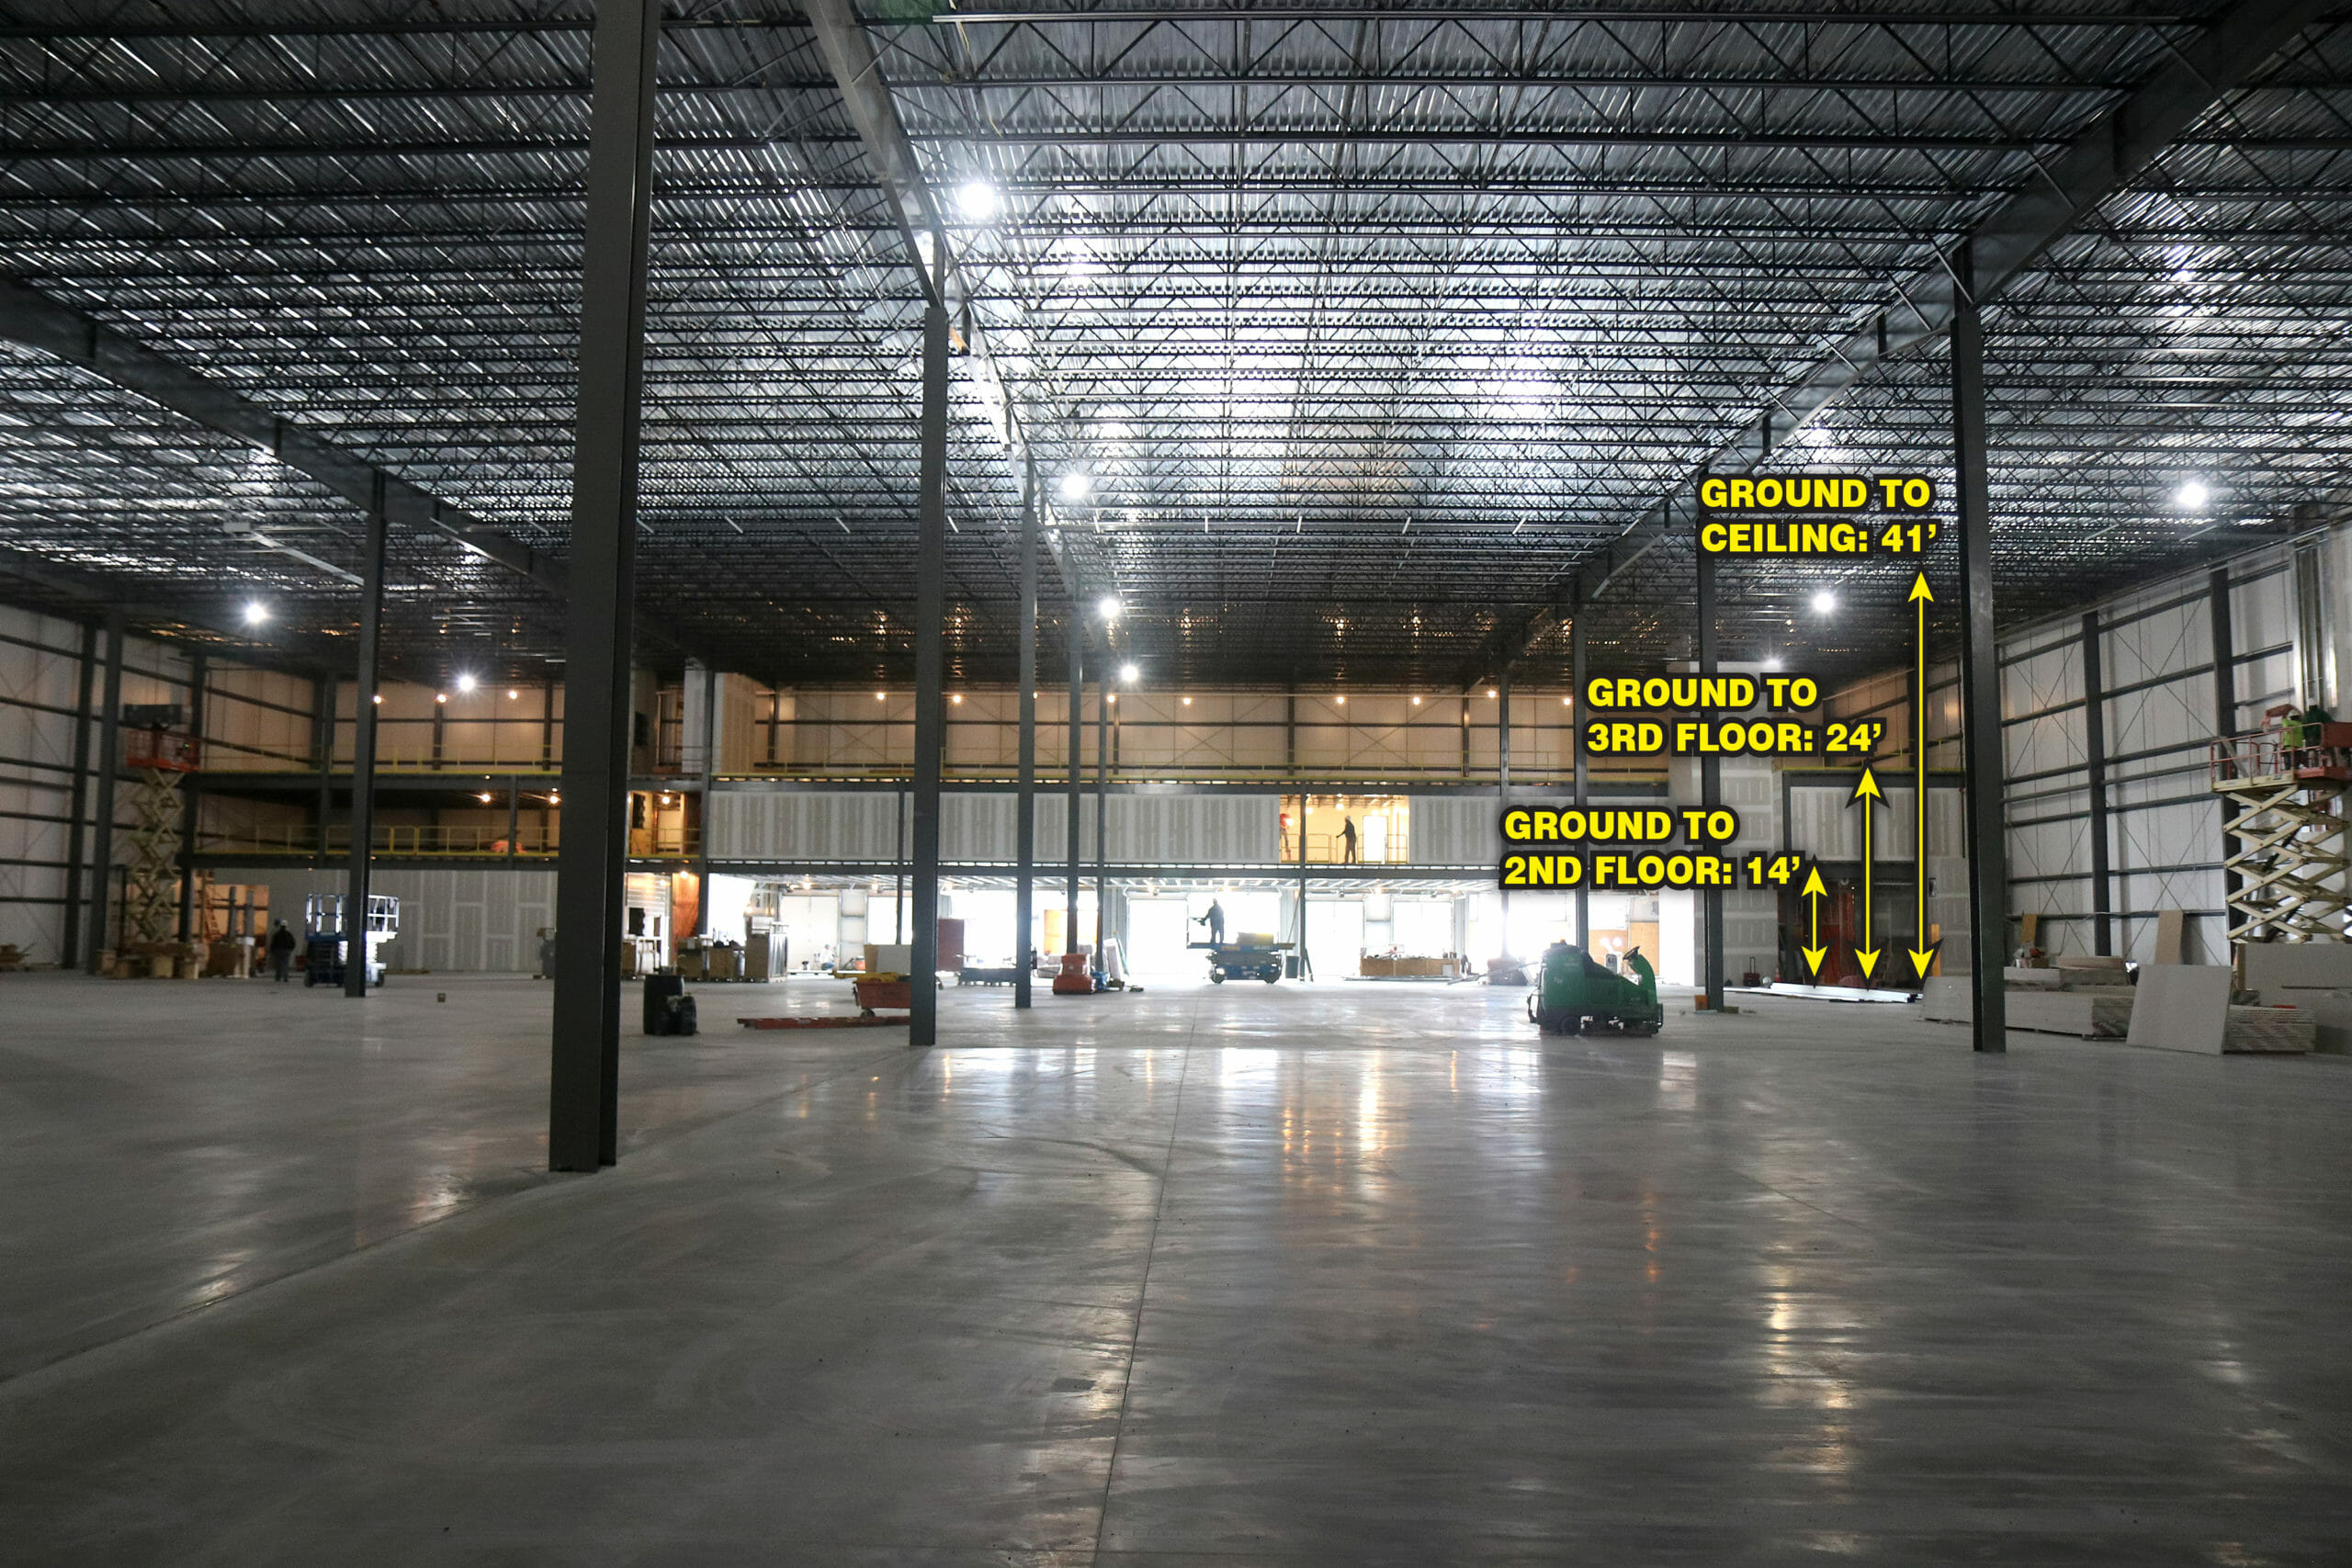 interior of stewarts plant expansion project. Ground to celiling 41 feet, ground to 3rd floor 24 feet, ground to 2nd floor 14 feet.